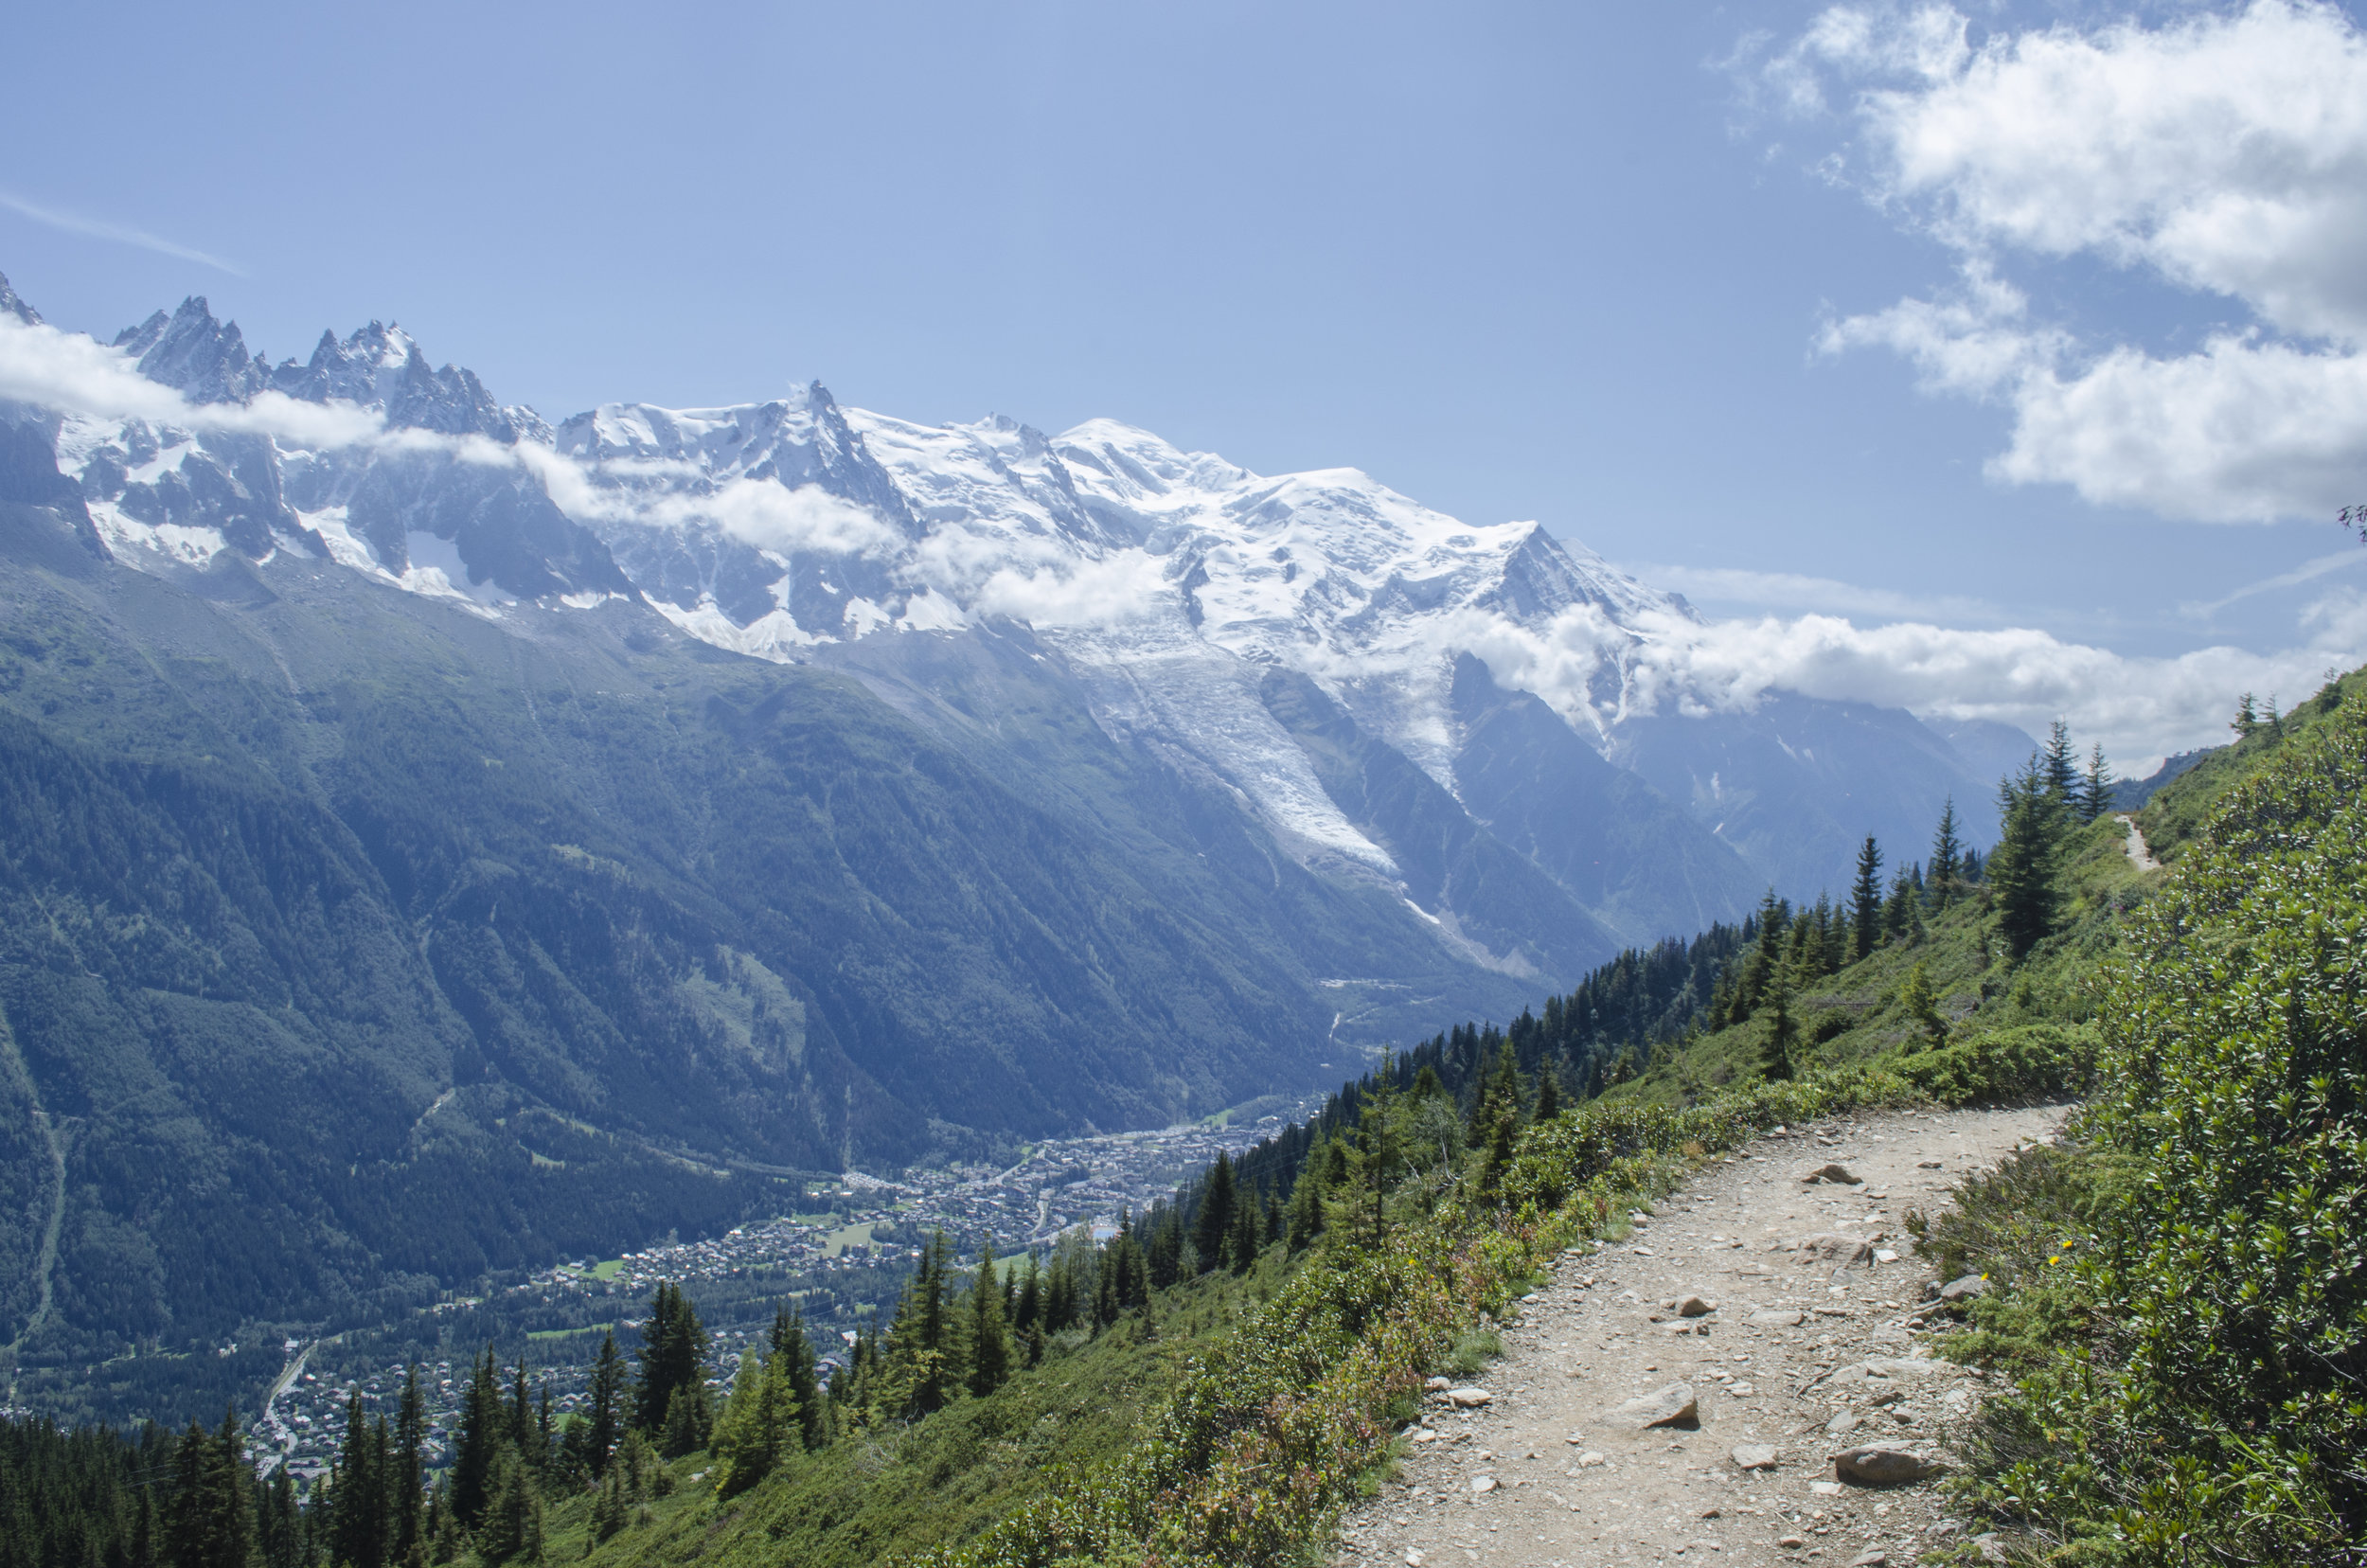 chamonix-valley_20571531350_o.jpg